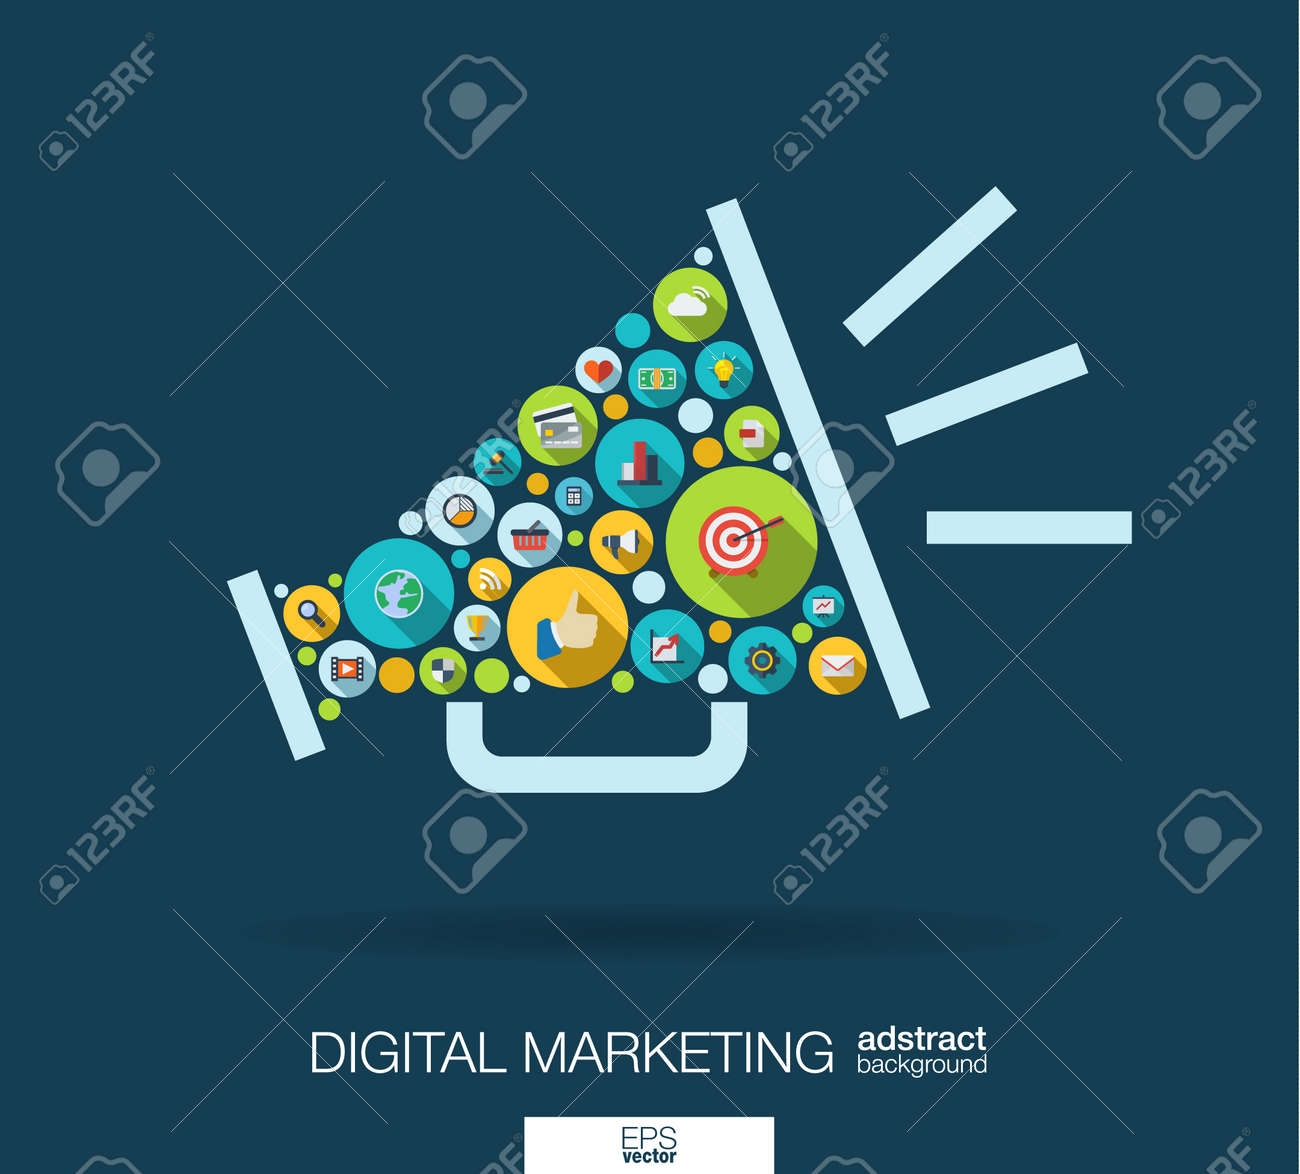 Color circles, flat icons in a speaker shape: digital marketing, social media, network, computer concept. Abstract background with connected objects in integrated group of element. - 53668265